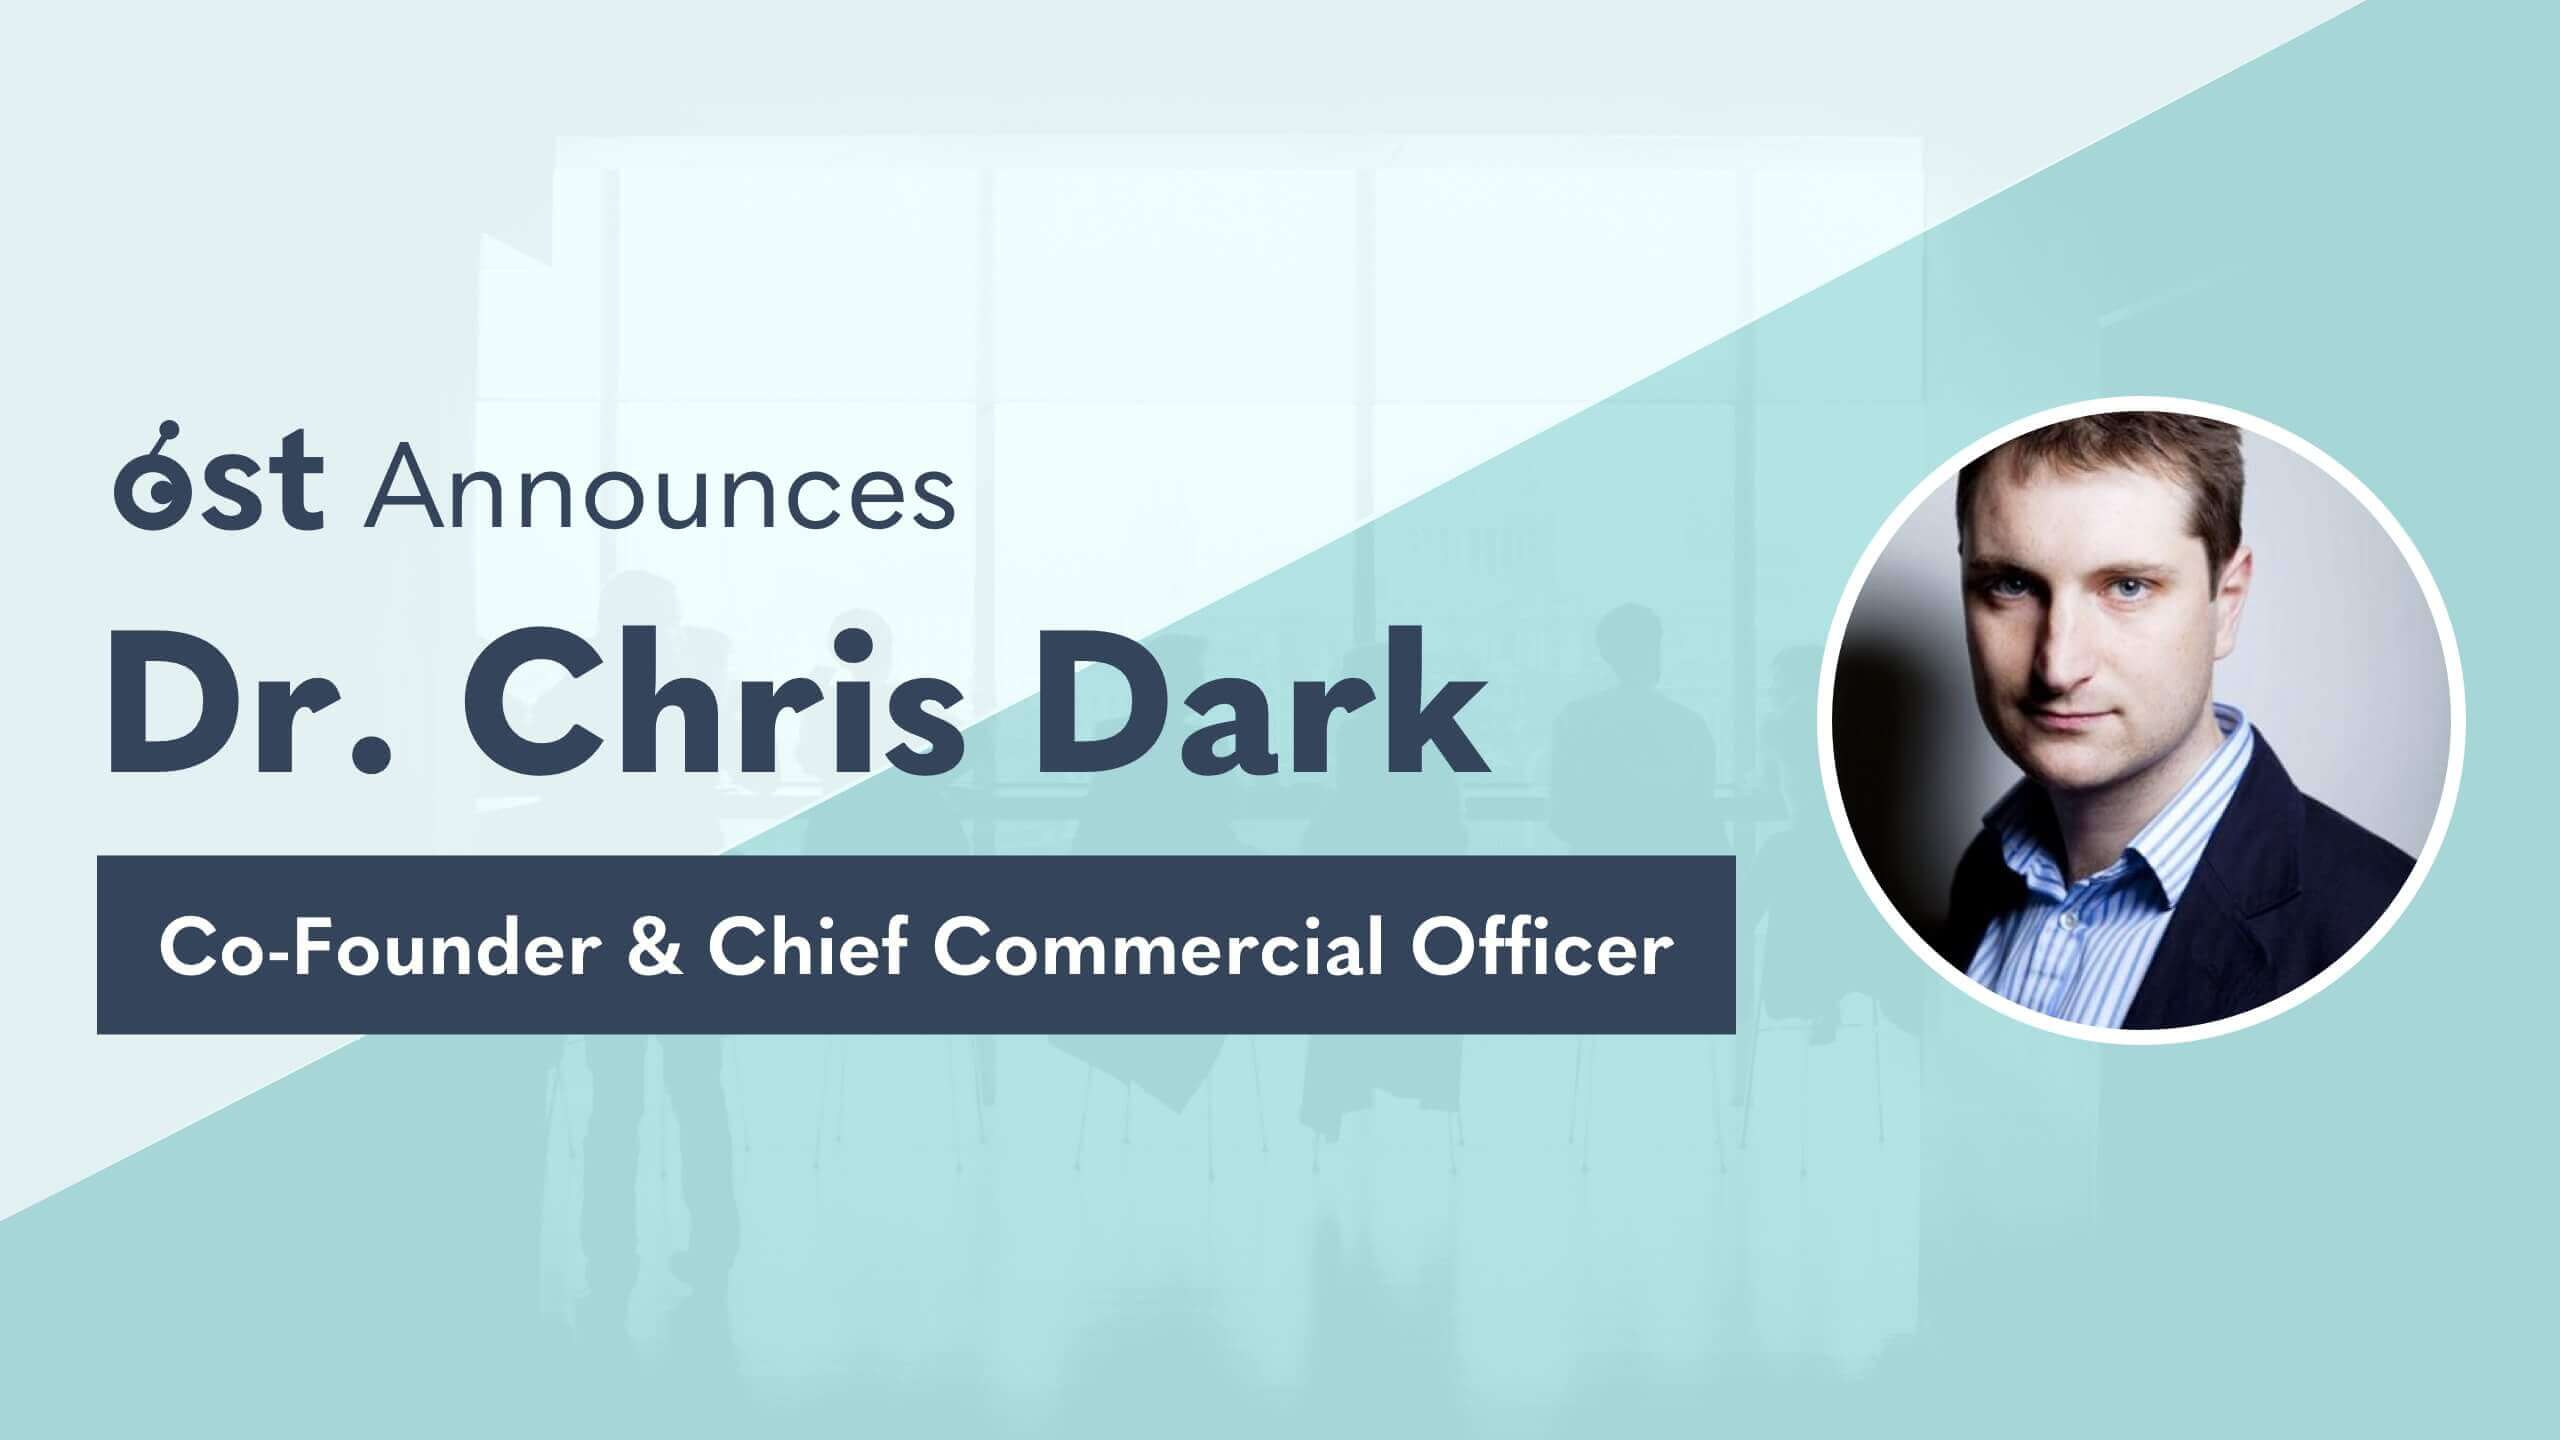 Dr. Chris Dark Joins OST as Co-Founder & Chief Commercial Officer